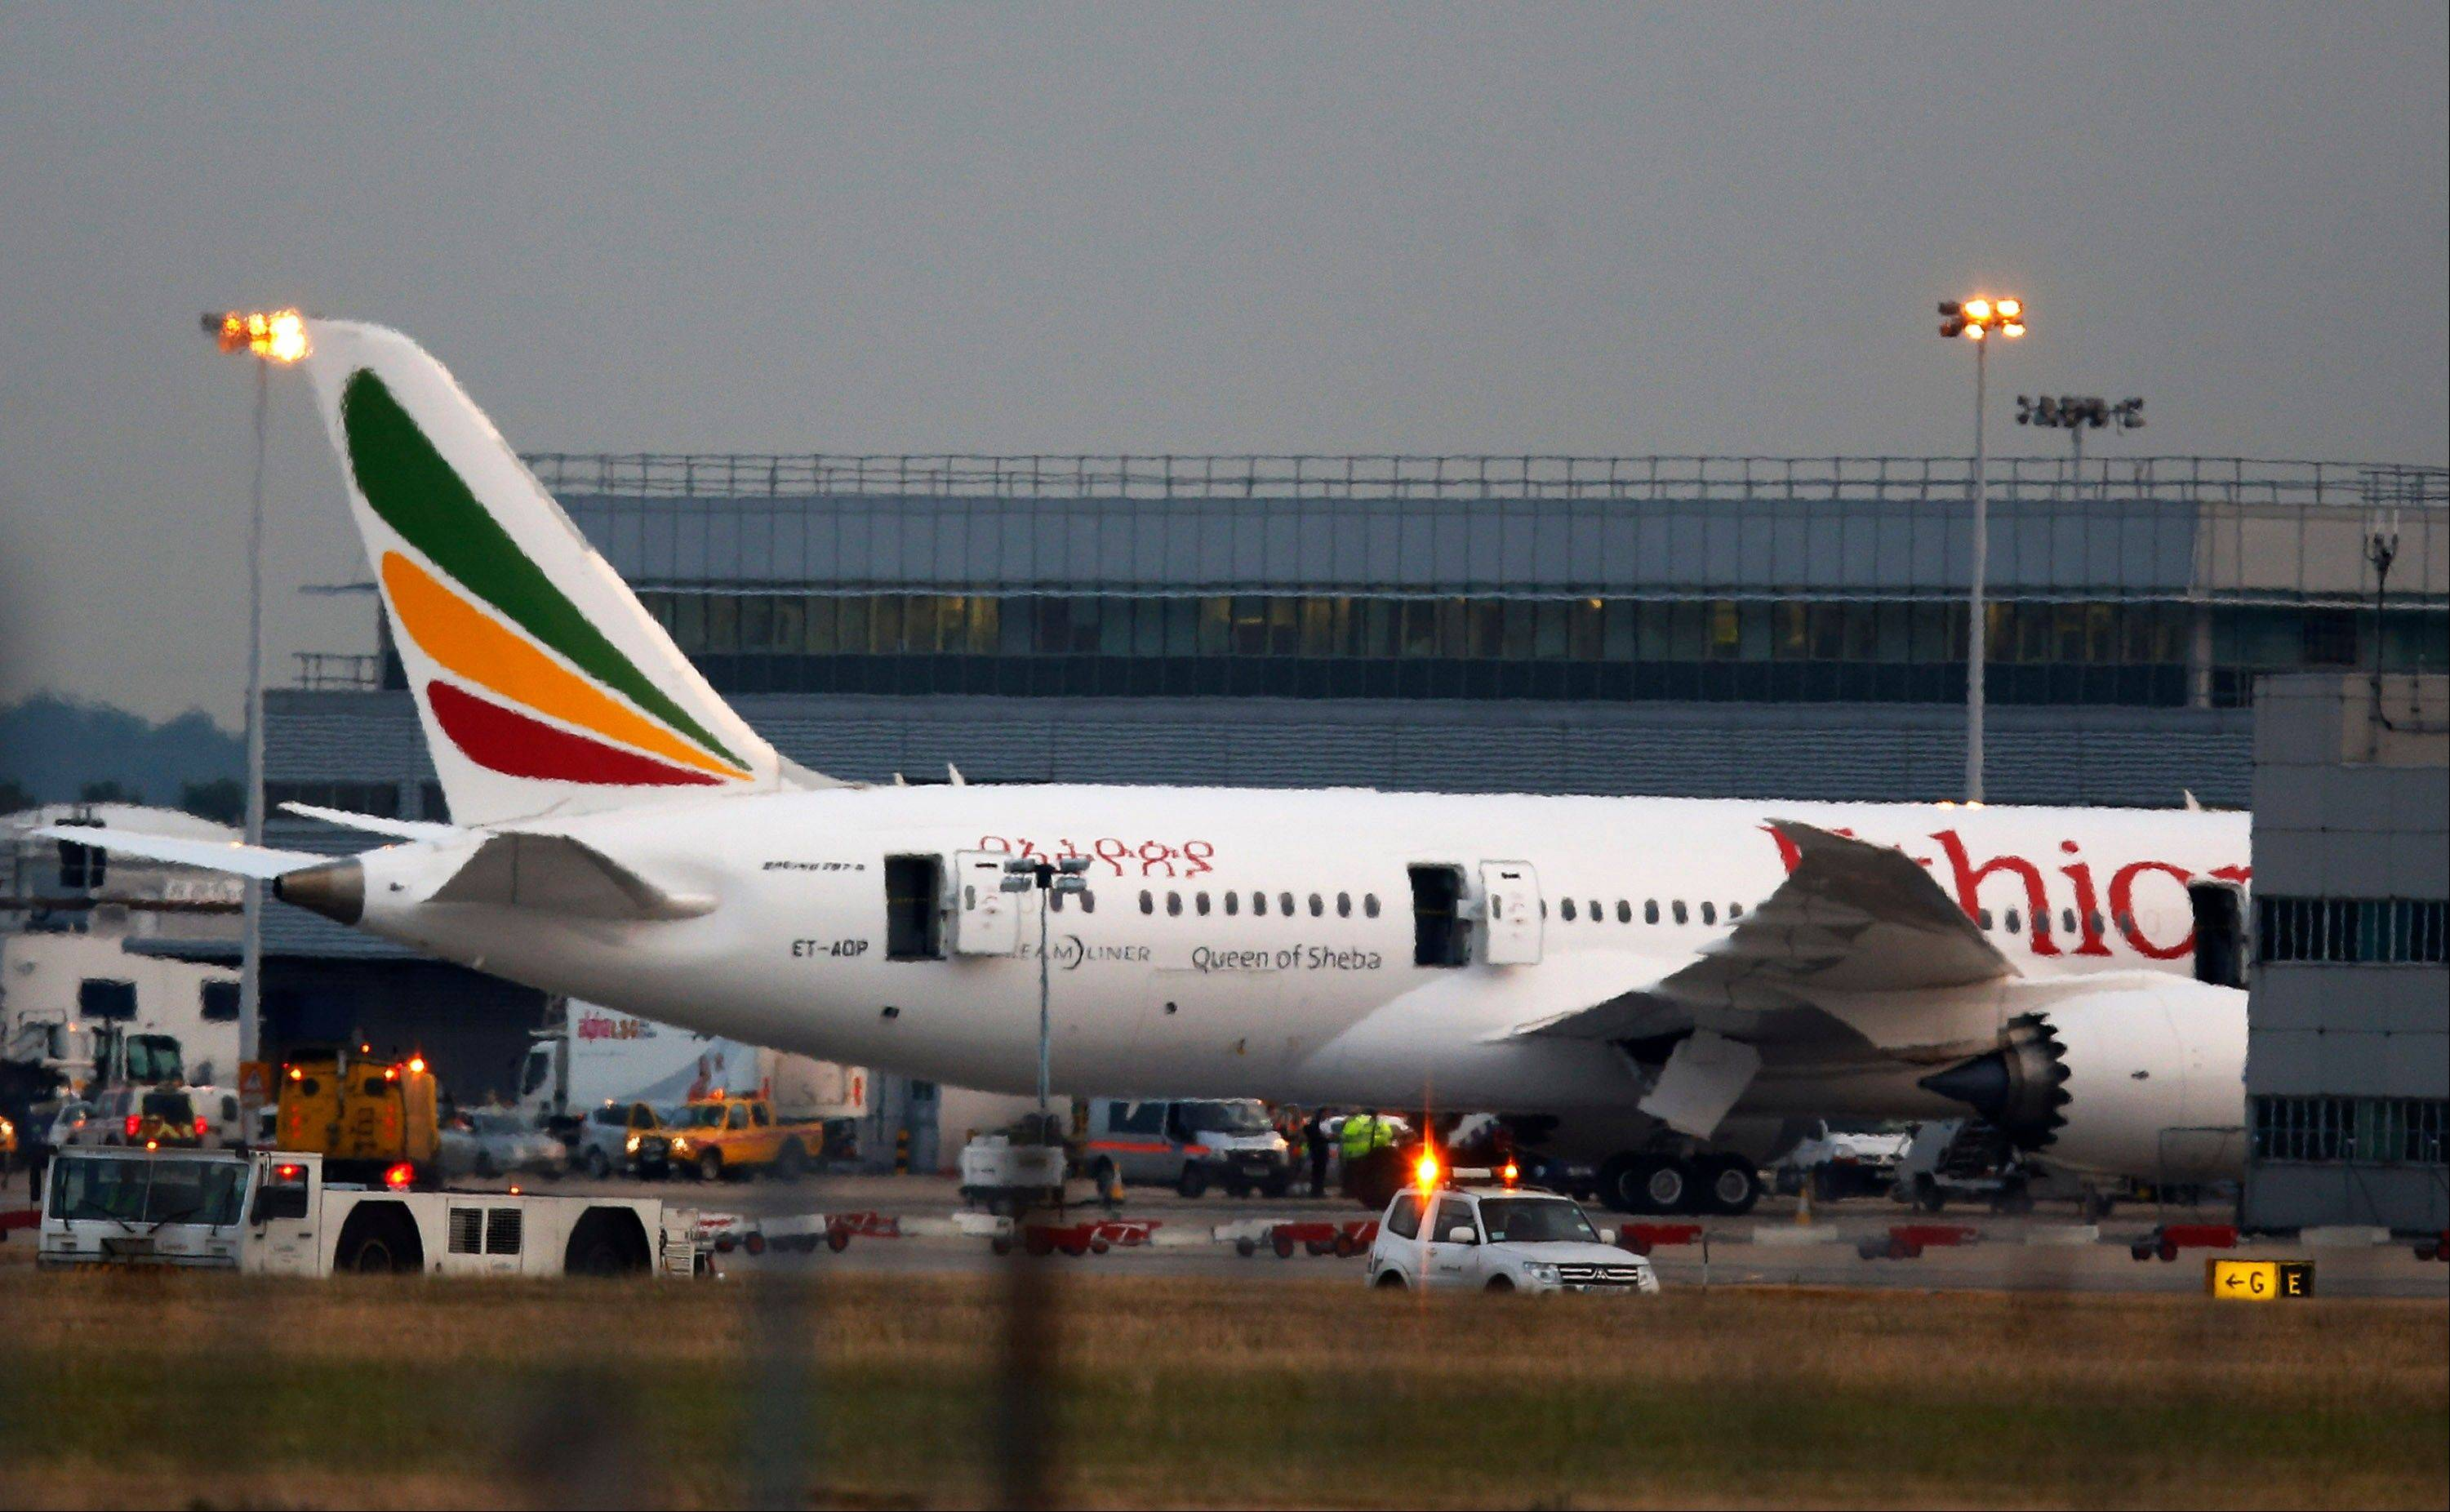 The Air Ethiopian Boeing 787 Dreamliner 'Queen of Sheba' plane on the runway near Terminal 3, at Heathrow Airport, London.